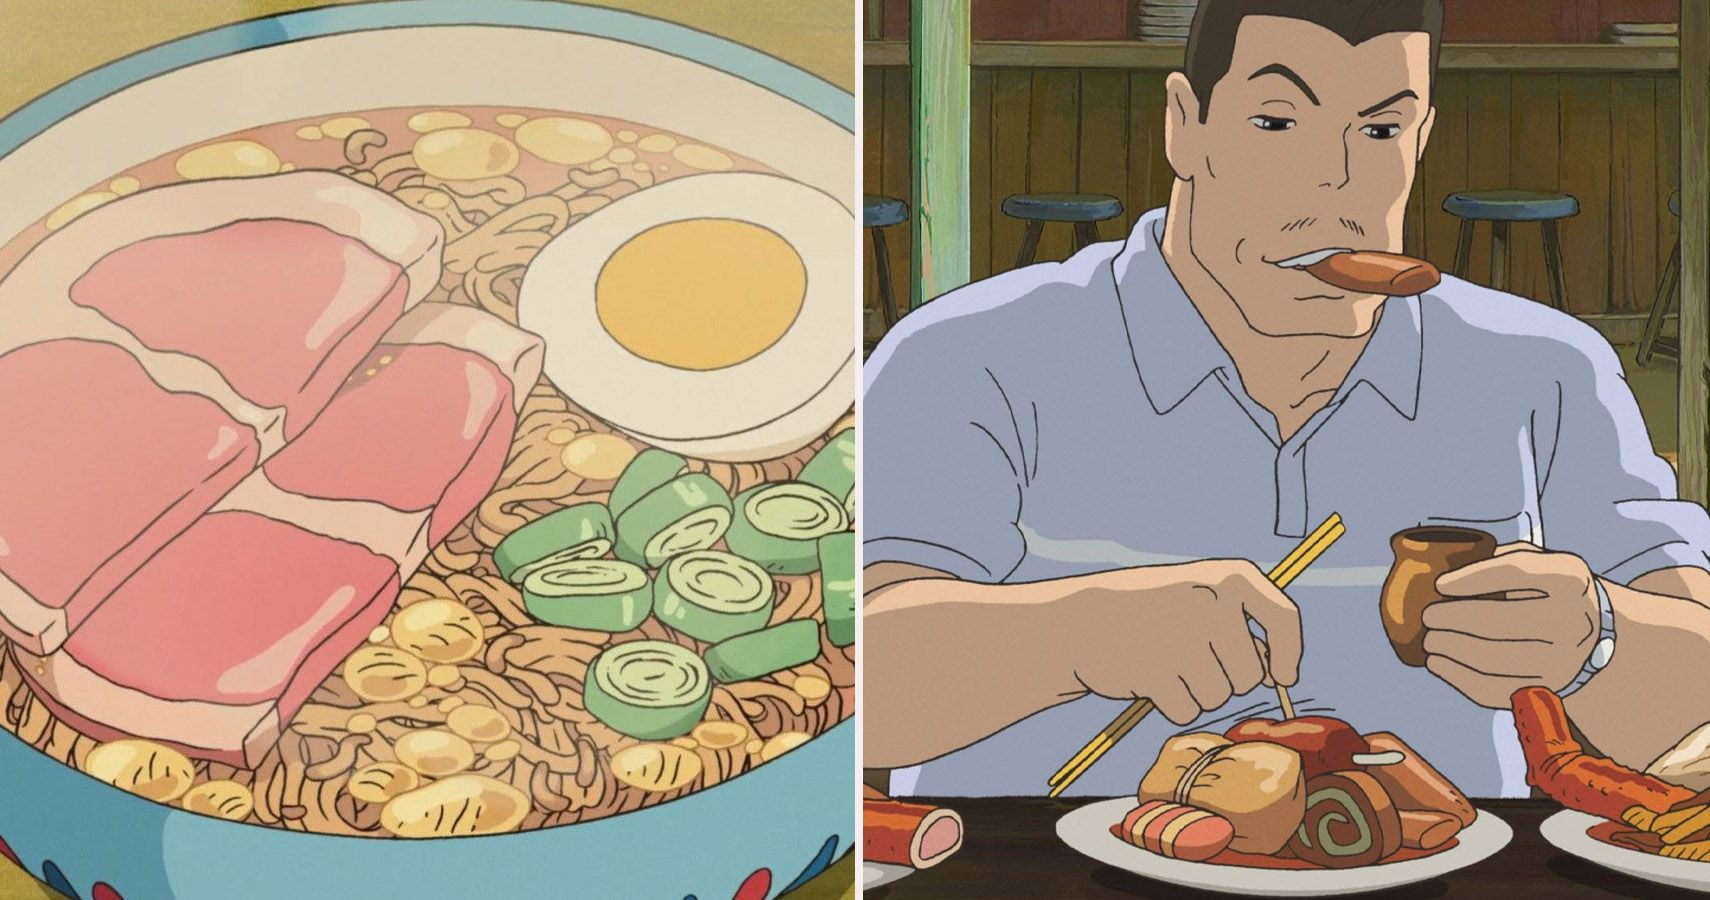 10 Mouthwatering Meals In Studio Ghibli Movies That We Wish We Could Eat